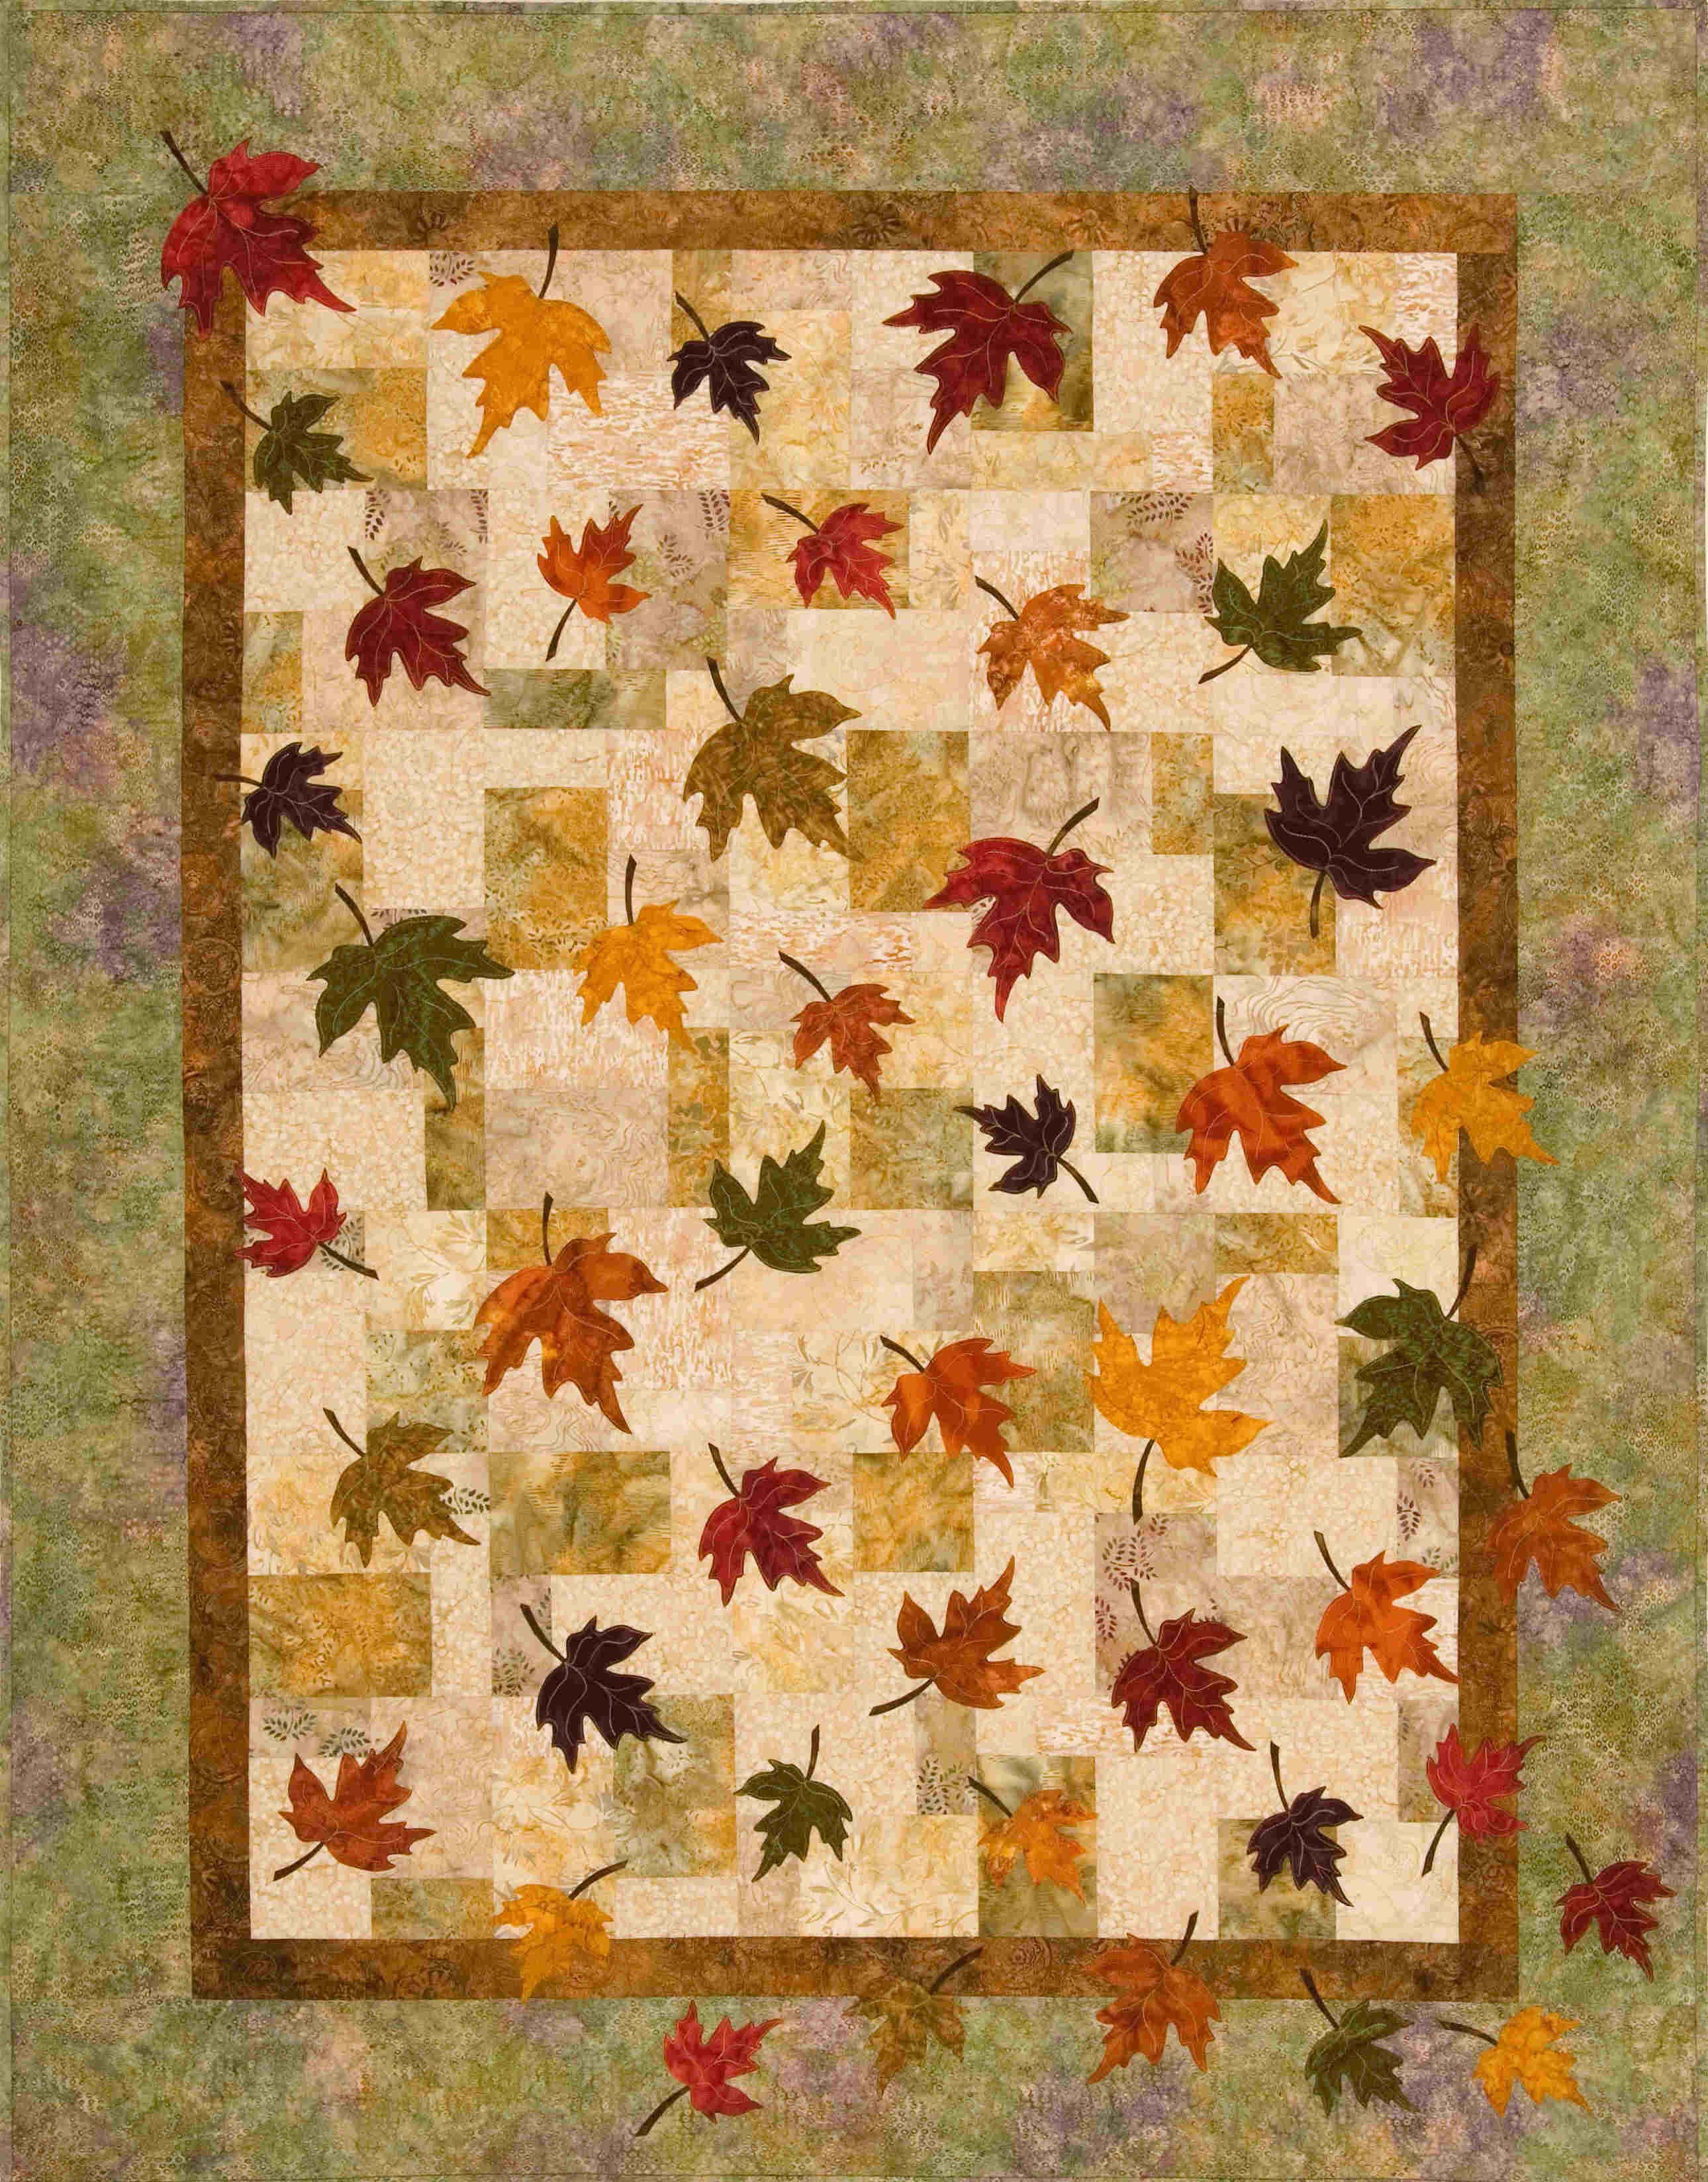 Falling Leaves Quilt Perfect For A Guest Room In The Fall